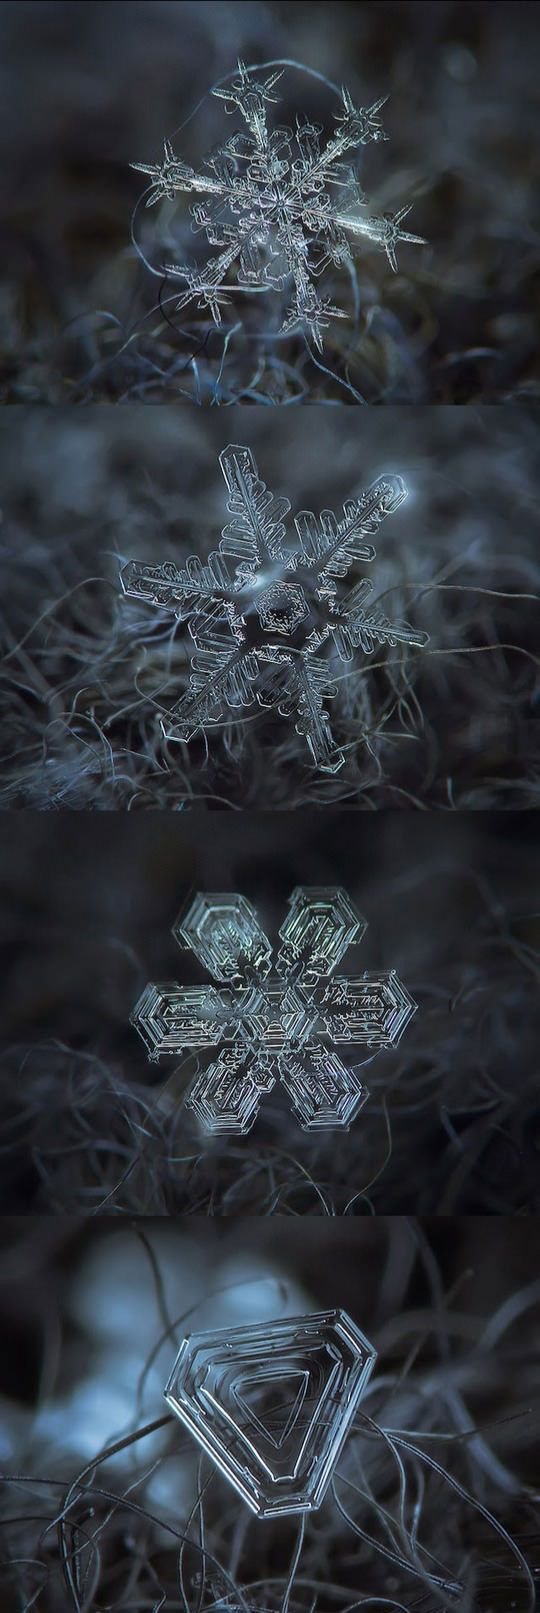 Micro-Photography Of Individual Snowflakes